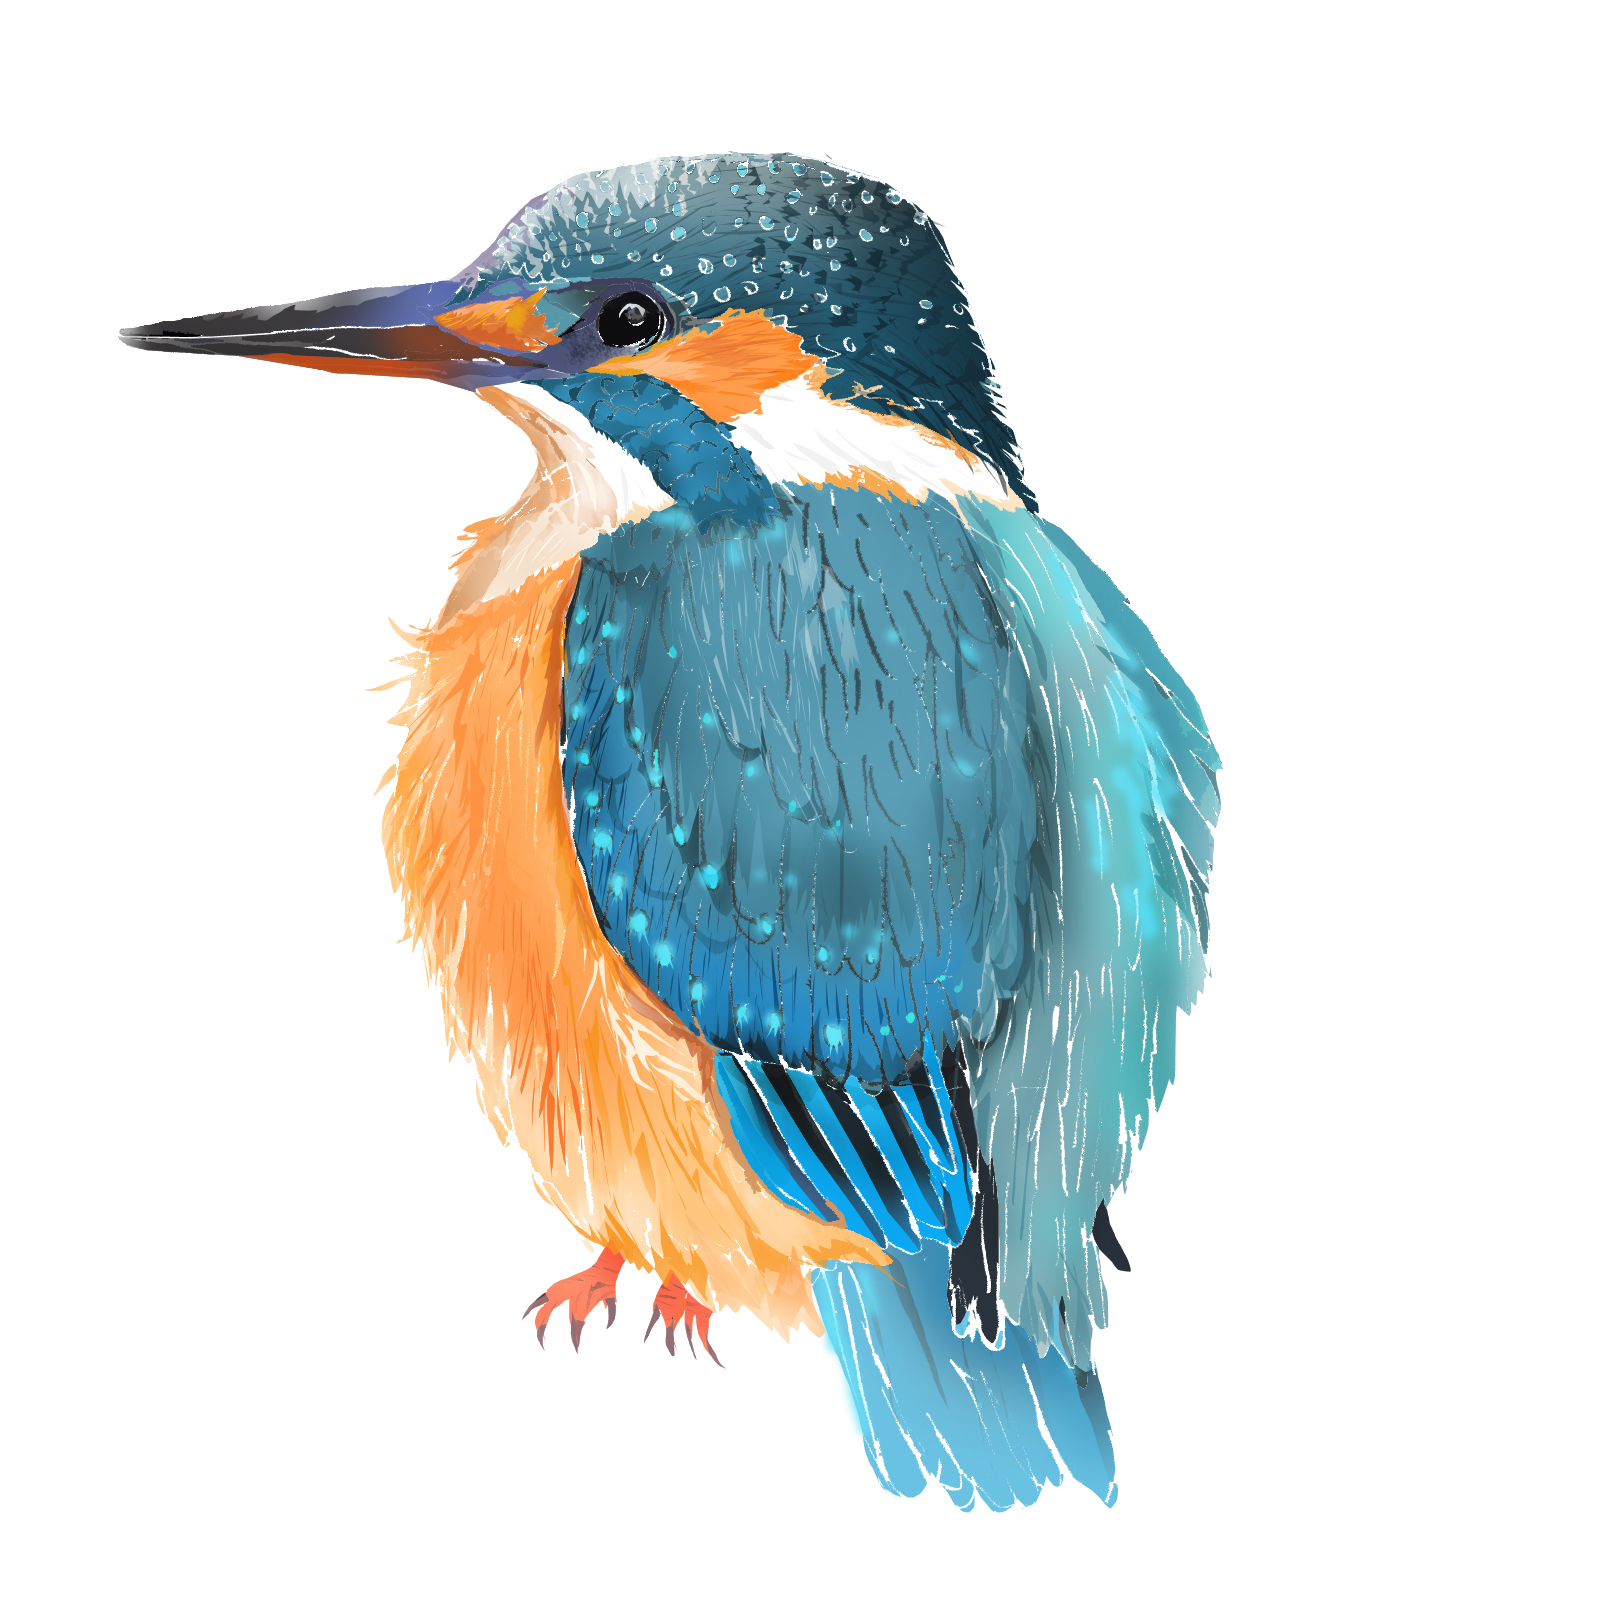 K - Kingfisher